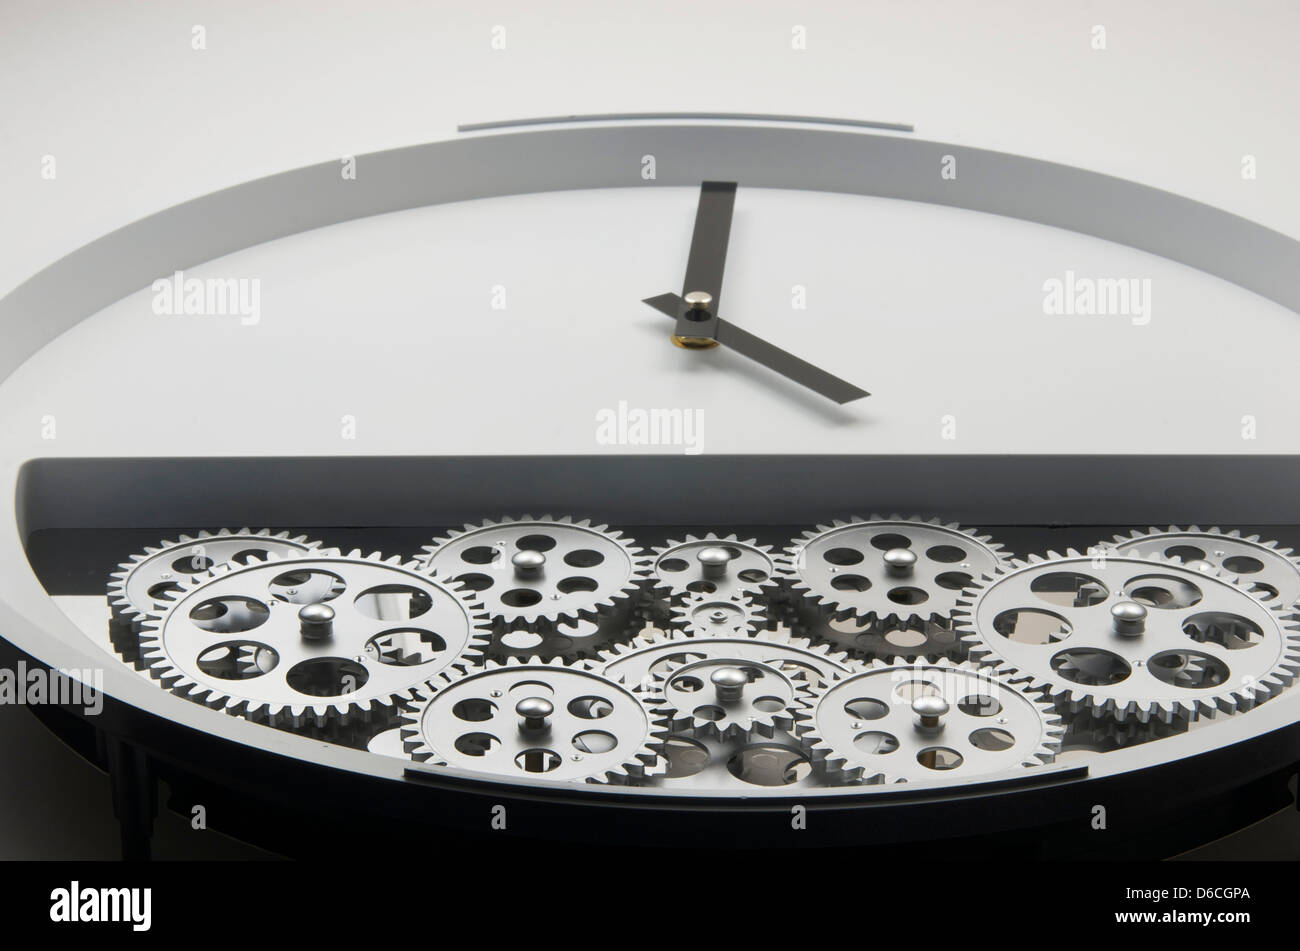 White modern looking clock with black hands and gears in it's lower half which make the clock tick. - Stock Image